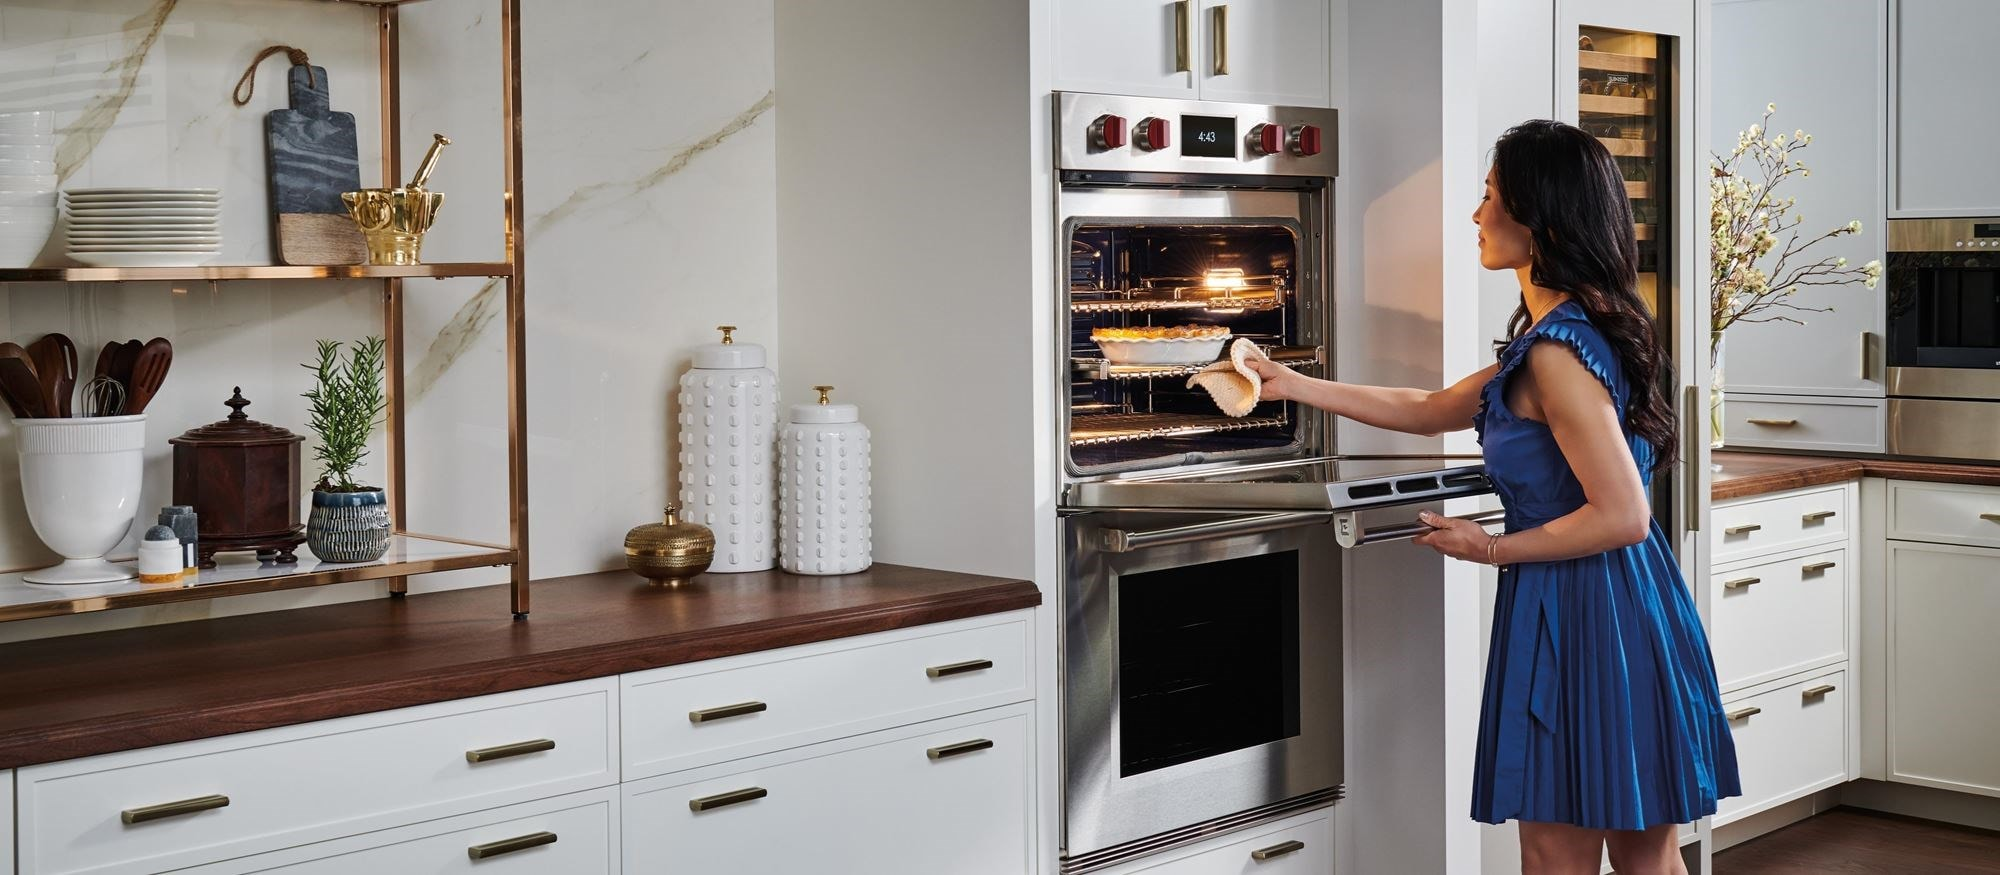 Wolf Built-In Ovens provide the ultimate luxury kitchen environment